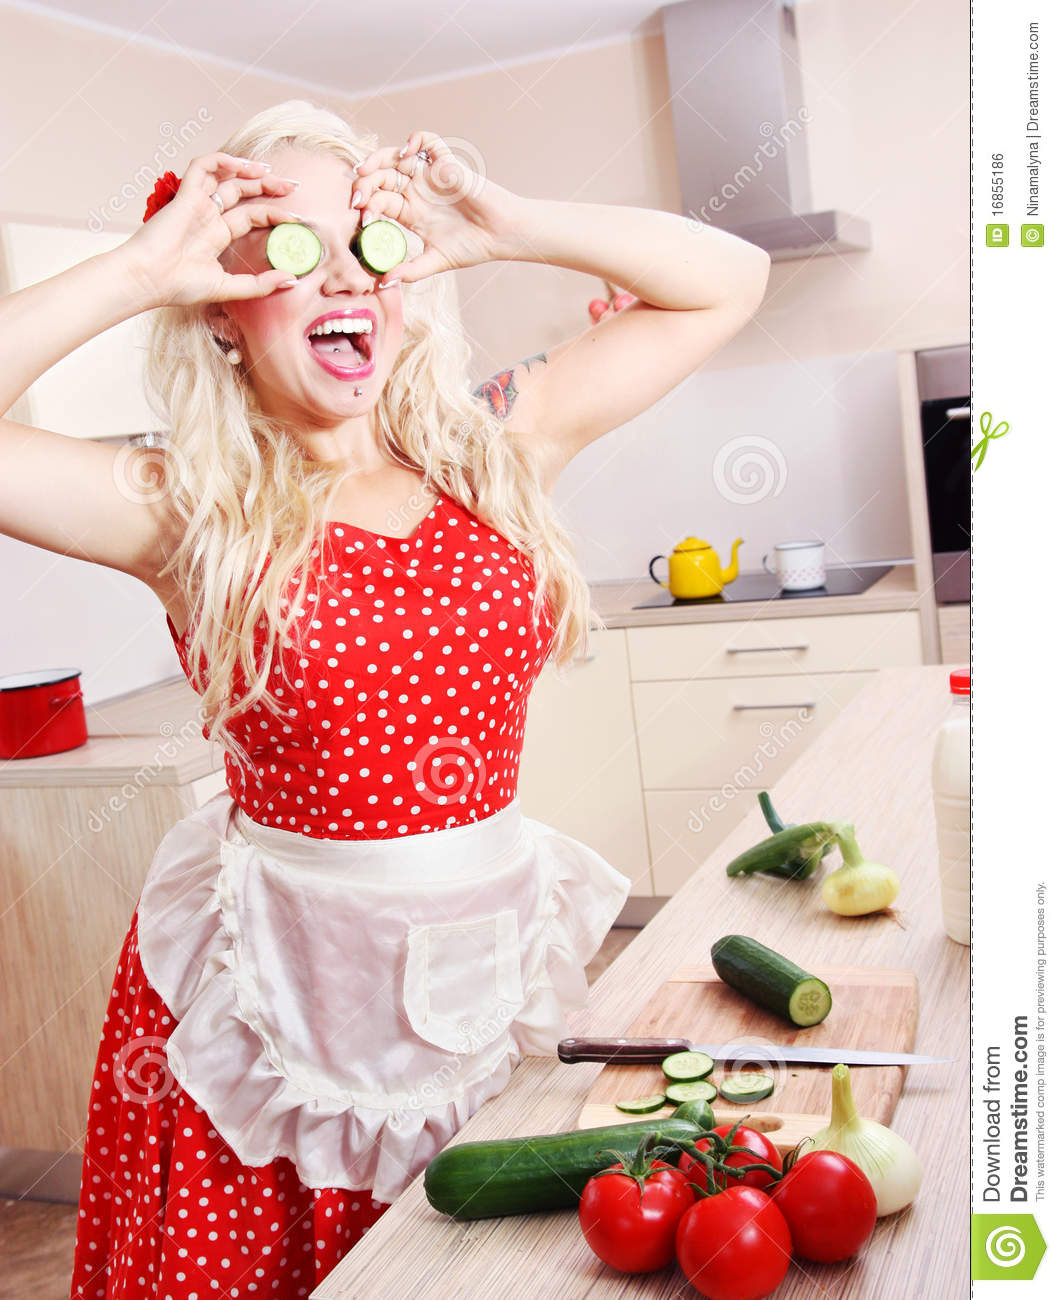 Download Crazy Housewife In The Kitchen Stock Photo - Image of blonde, knife: 16855186